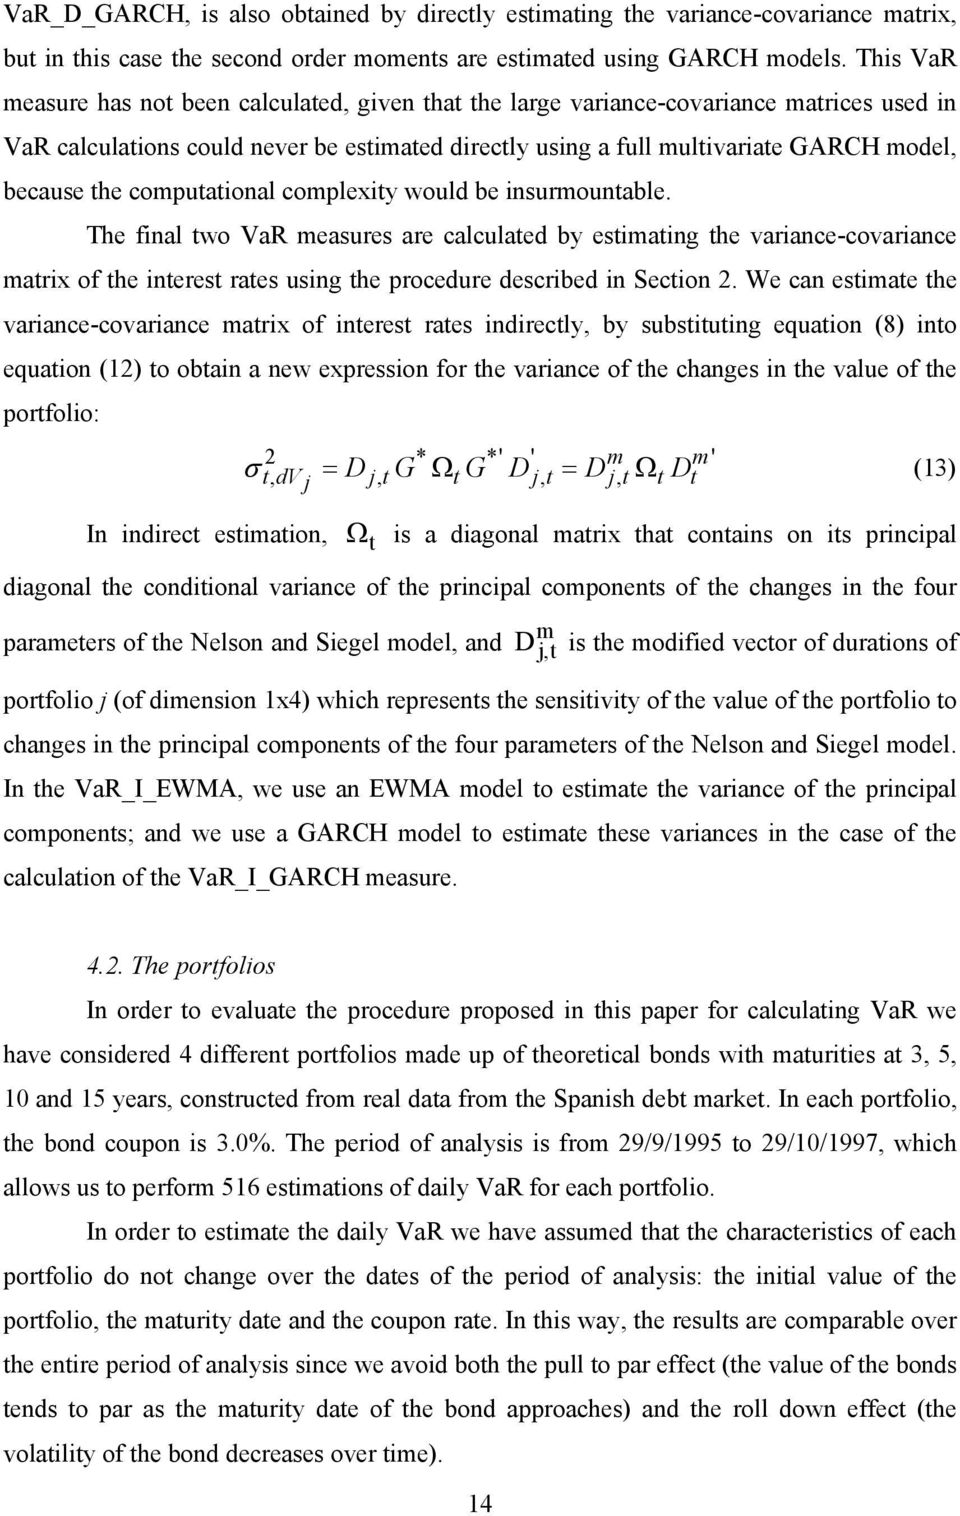 compuaional complexiy would be insurmounable. The final wo VaR measures are calculaed by esimaing he variance-covariance marix of he ineres raes using he procedure described in Secion.